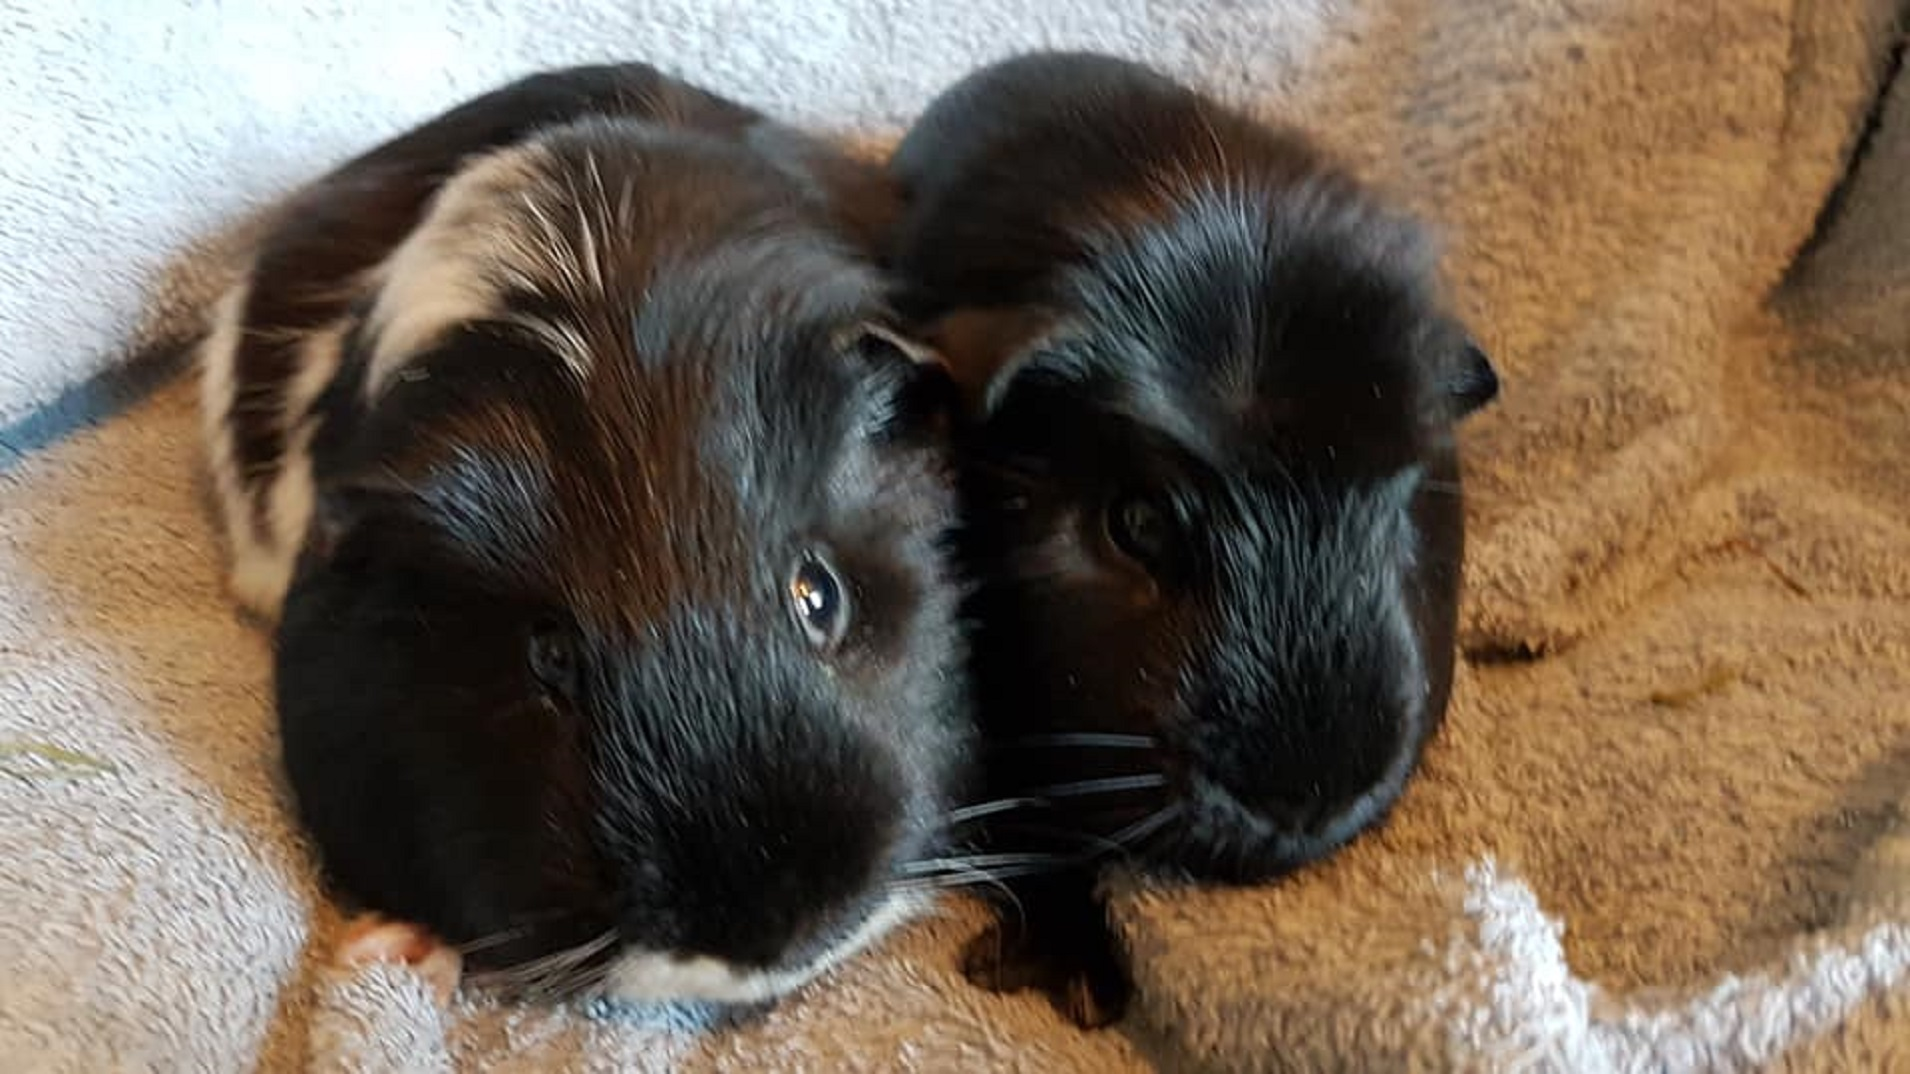 Frankie & Vinnie (Hagrid  & Sirius) Feb 17th 2019